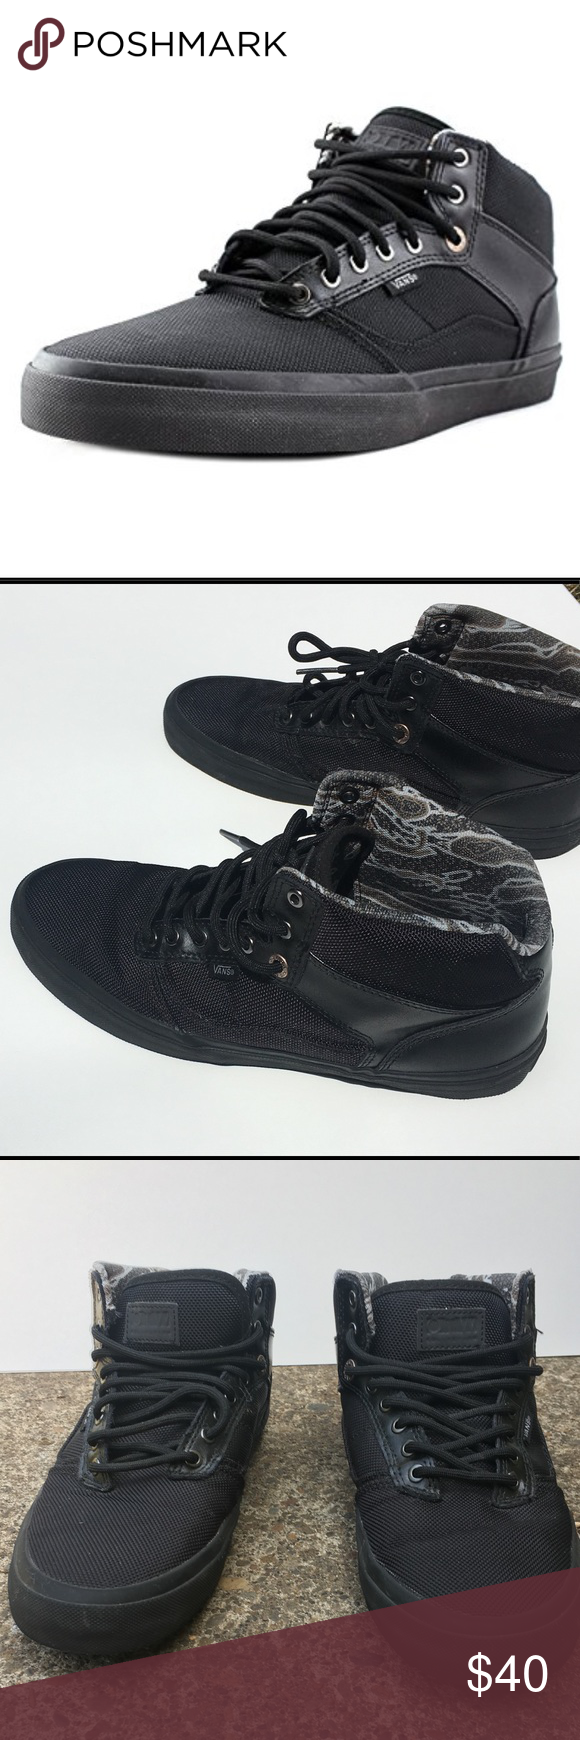 5ac704e9fa7ed2 Vans Bedford Tiger Clash Black Men s Shoes Vans Bedford Tiger Clash shoes.  Only worn twice and in great condition. Size 9 men s shoes.